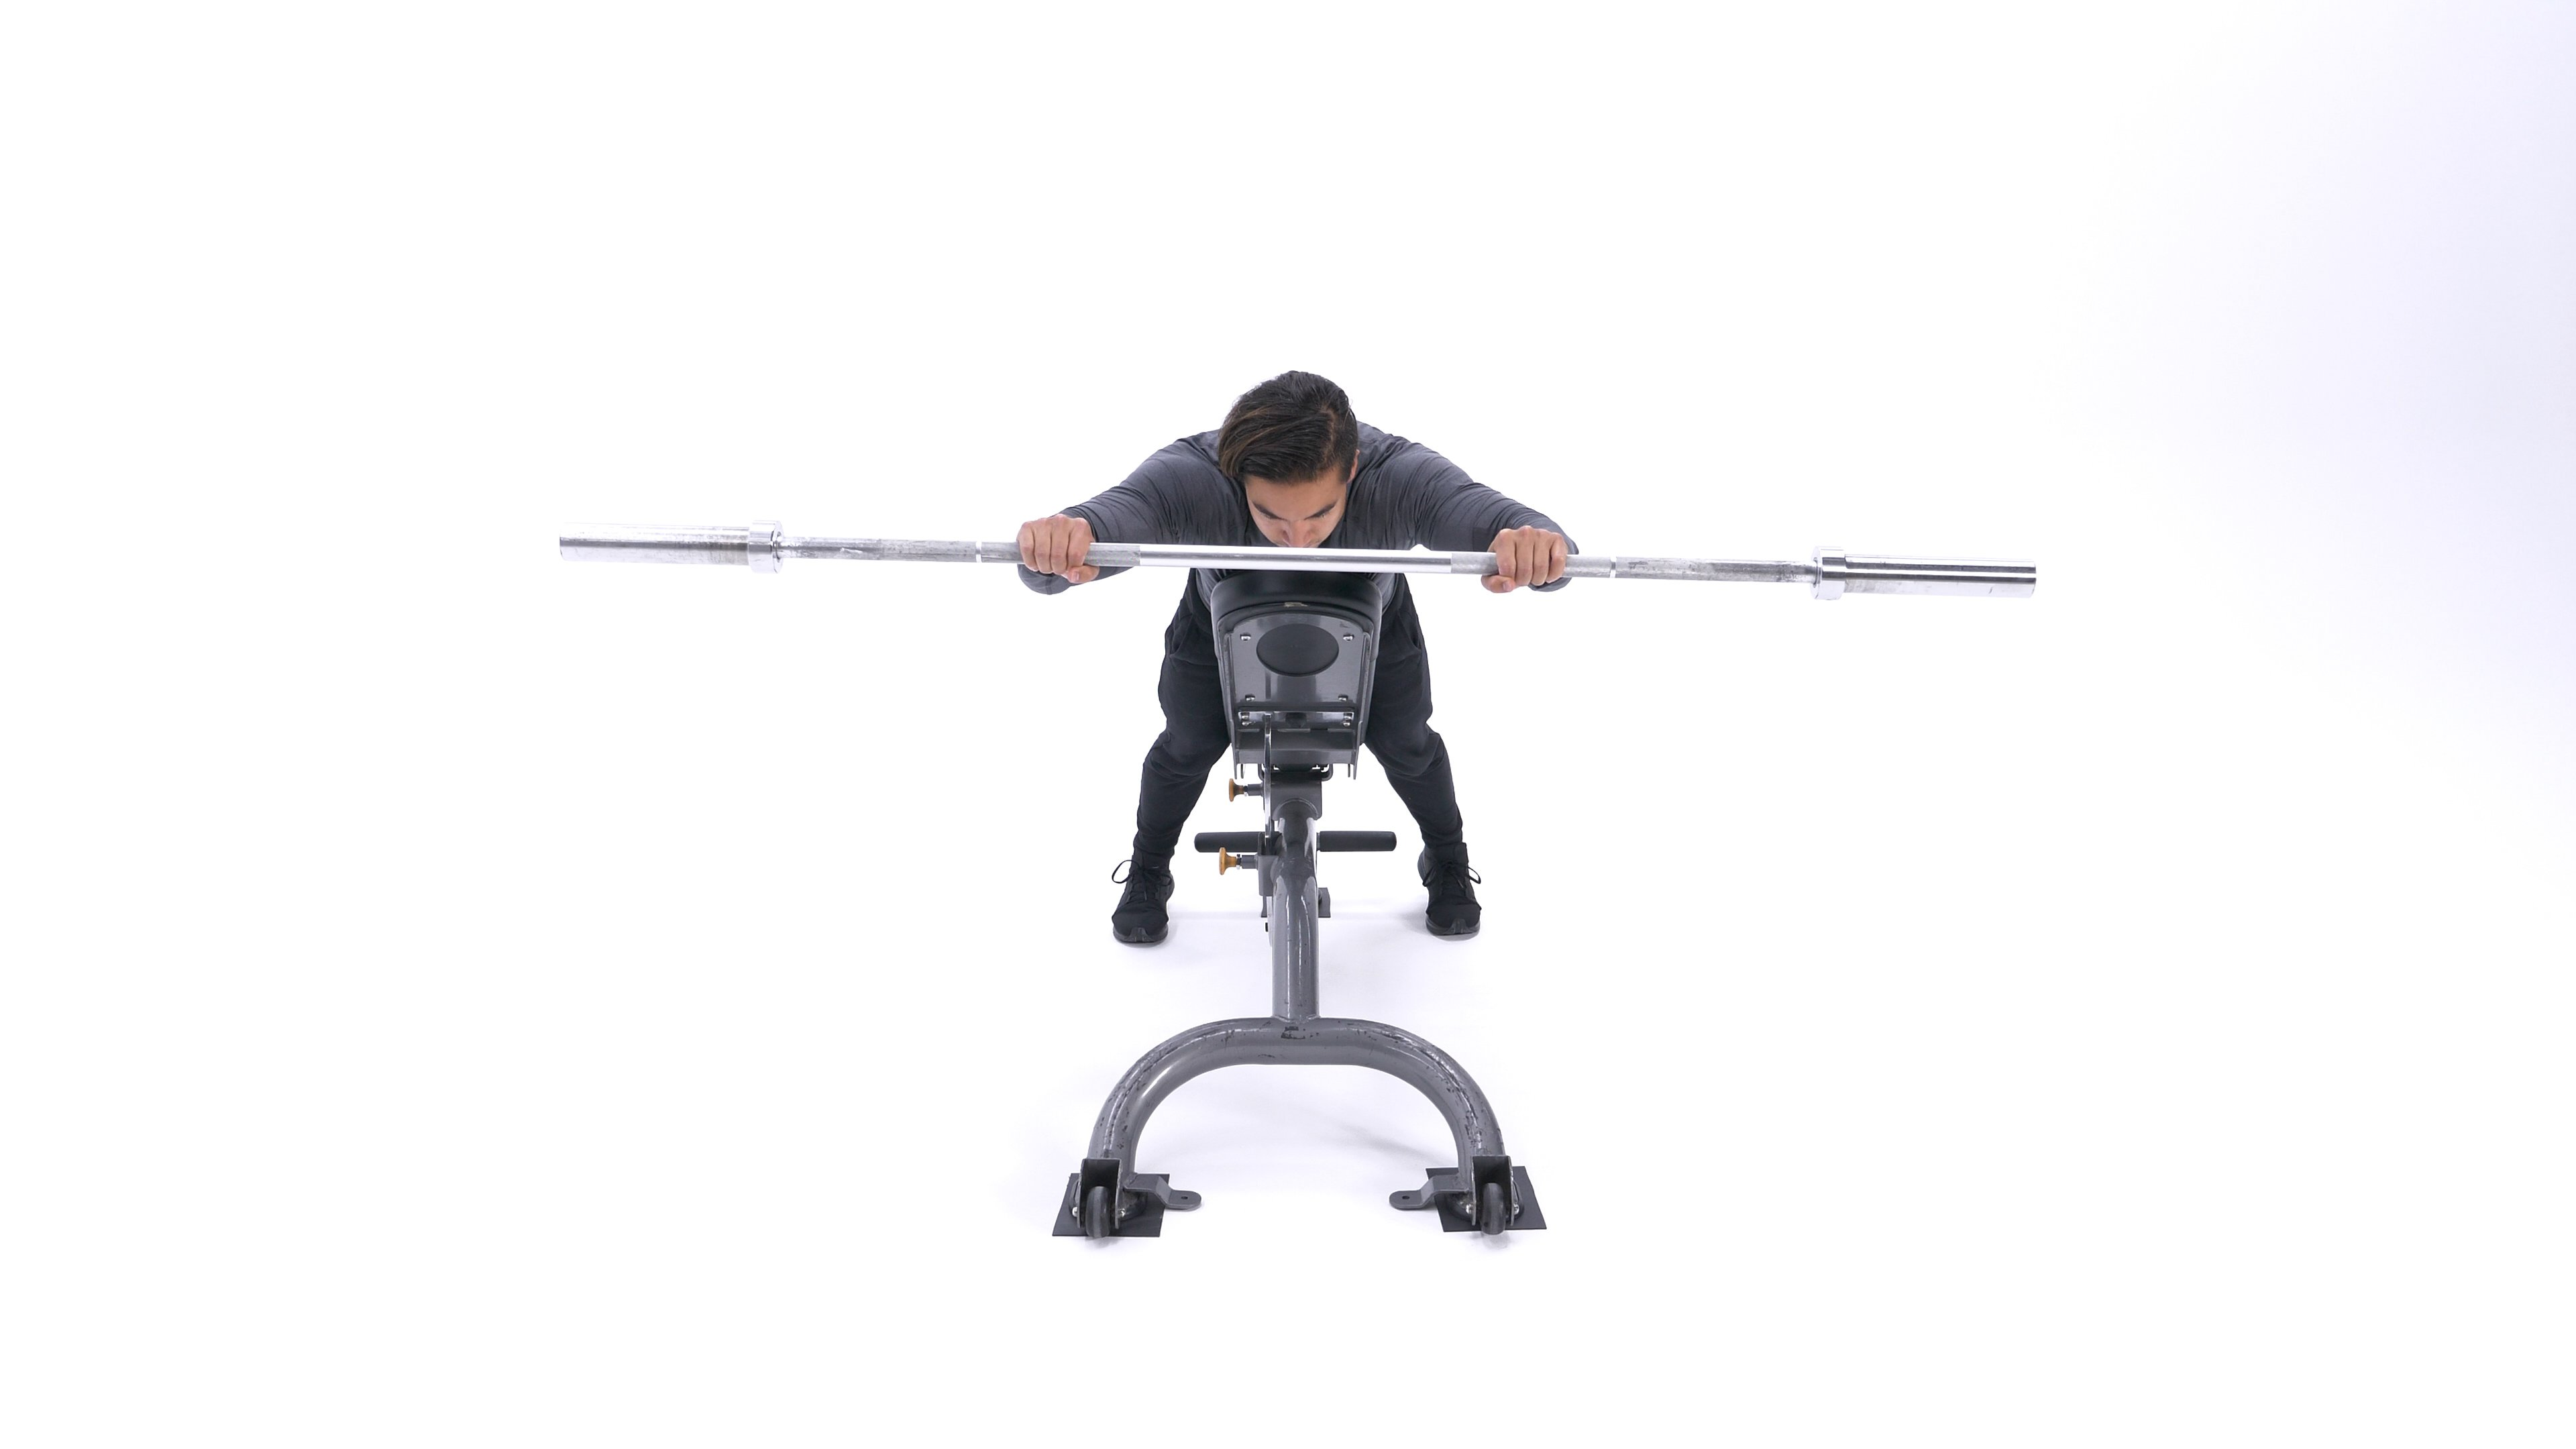 Incline face-down bar front raise image